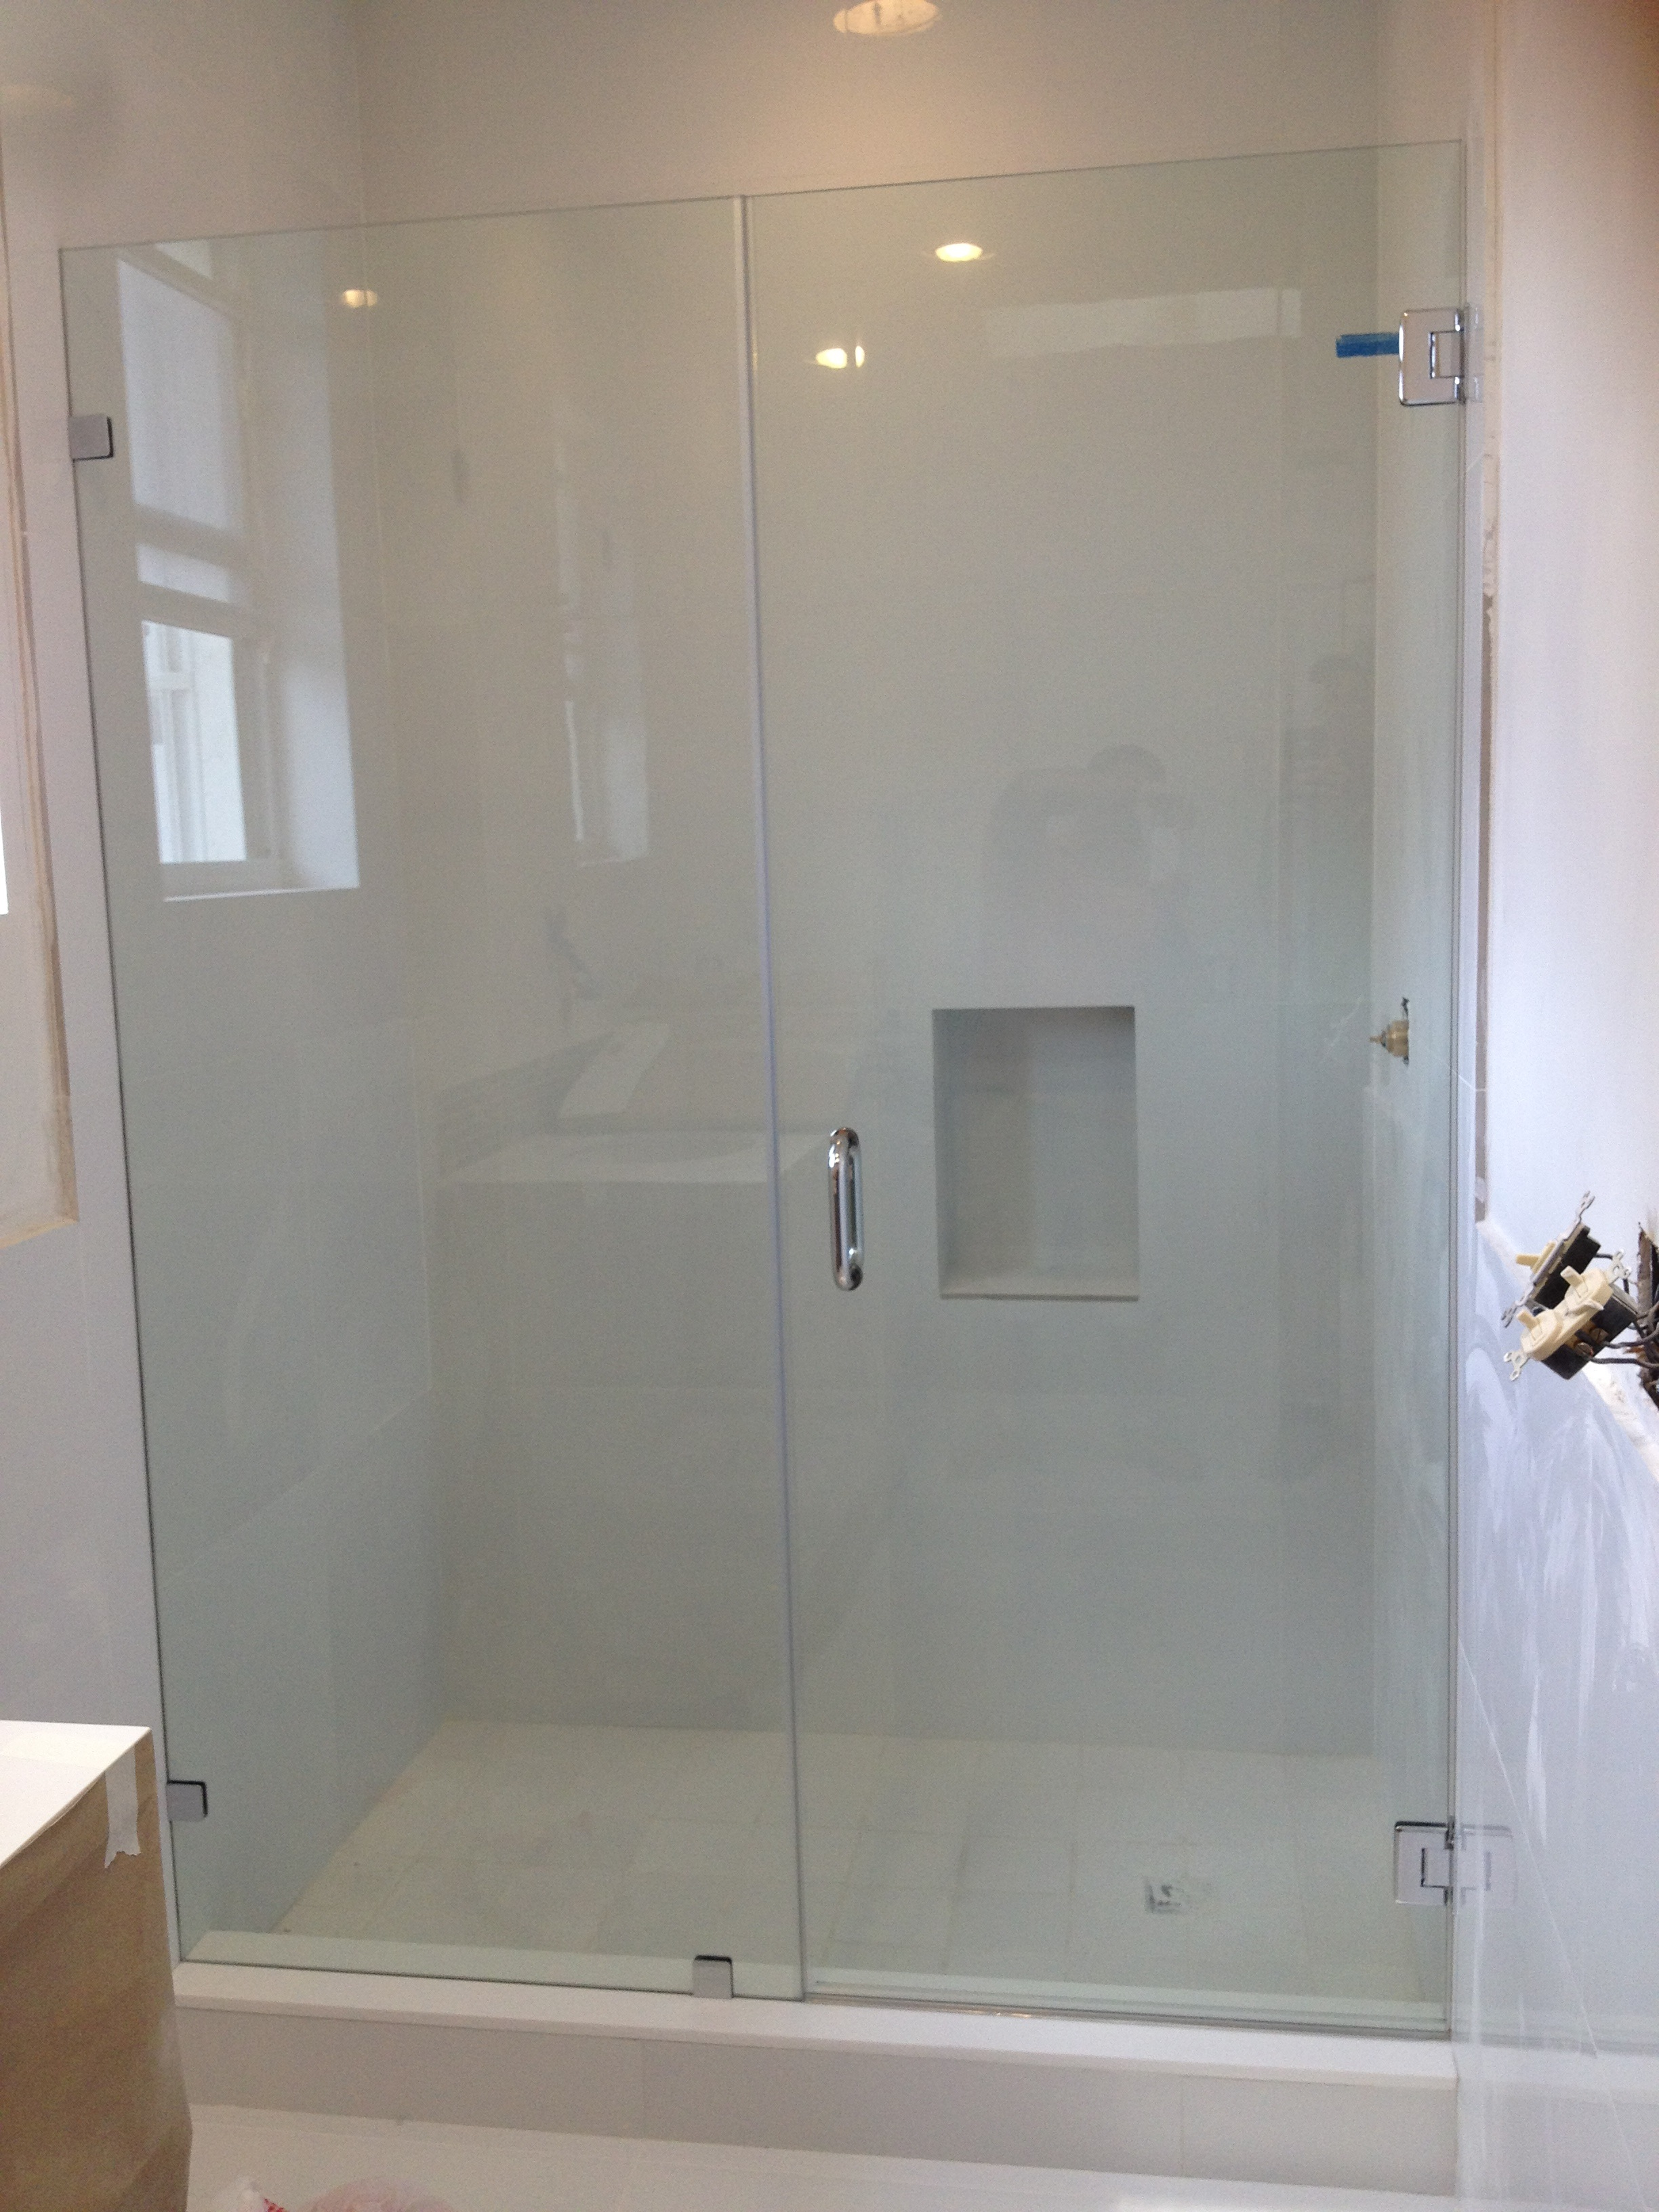 Frameless glass door hinges - Framless Shower Glass Doors And Mirrors